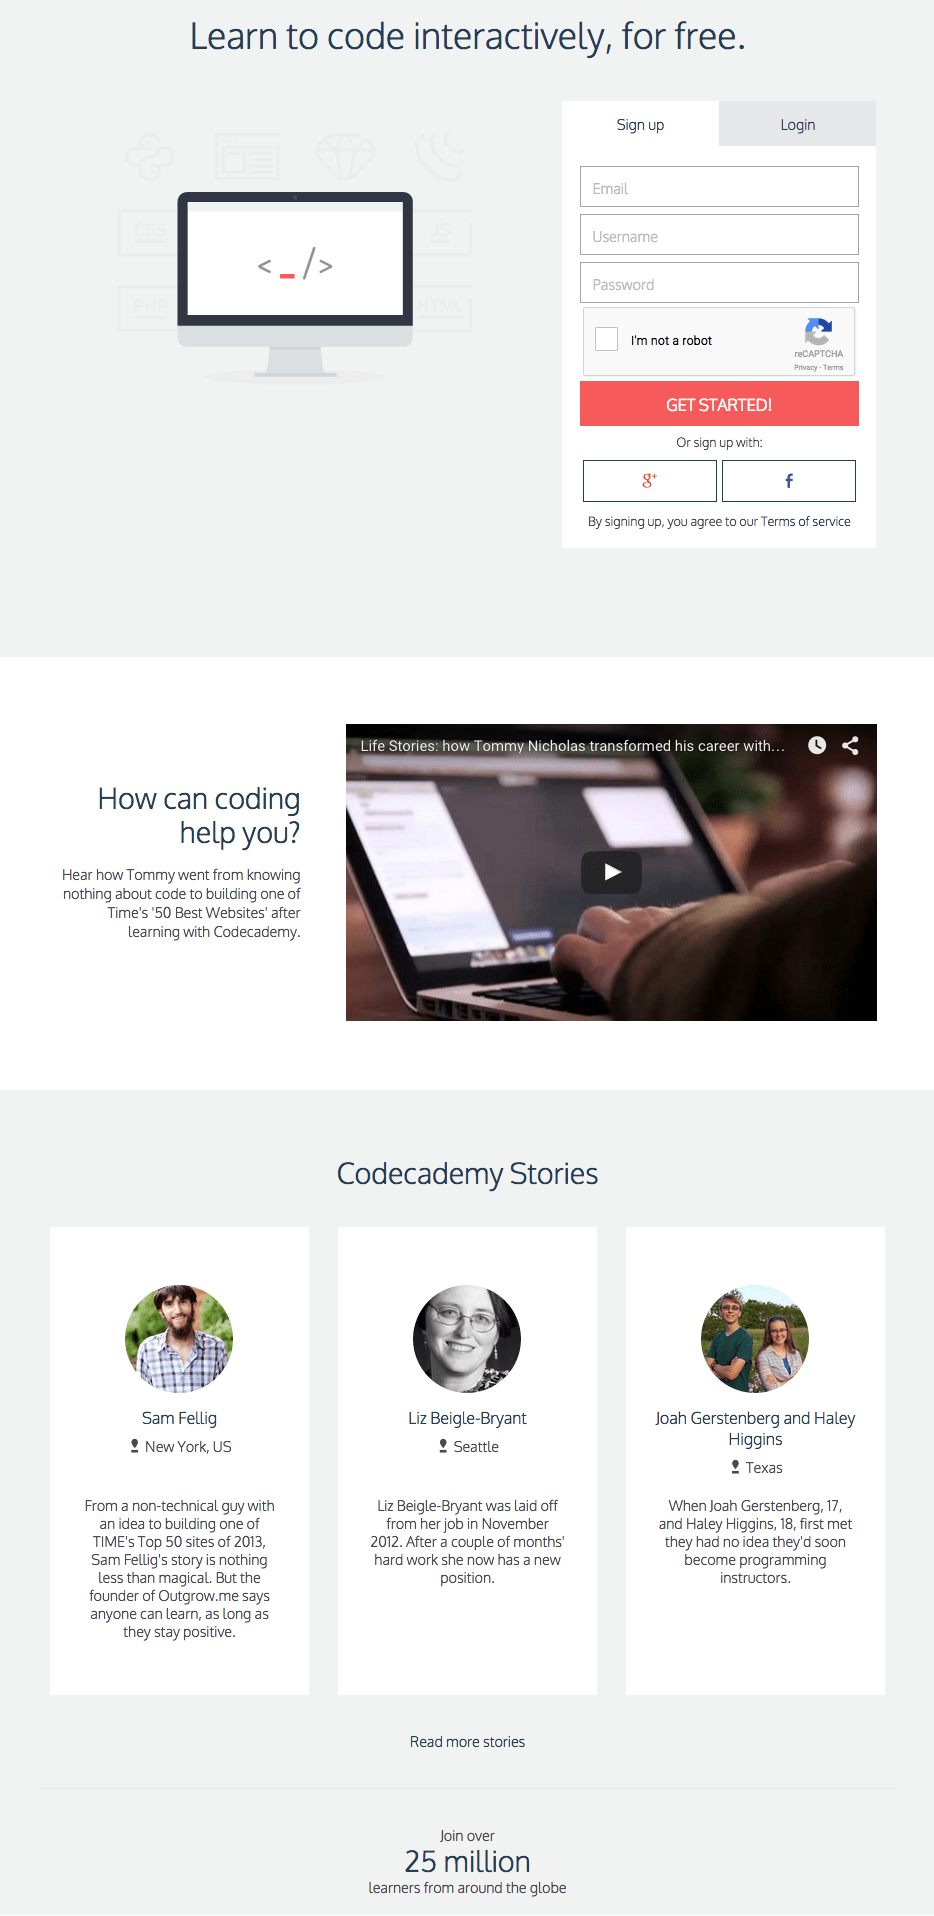 codecademy-landing-page.png